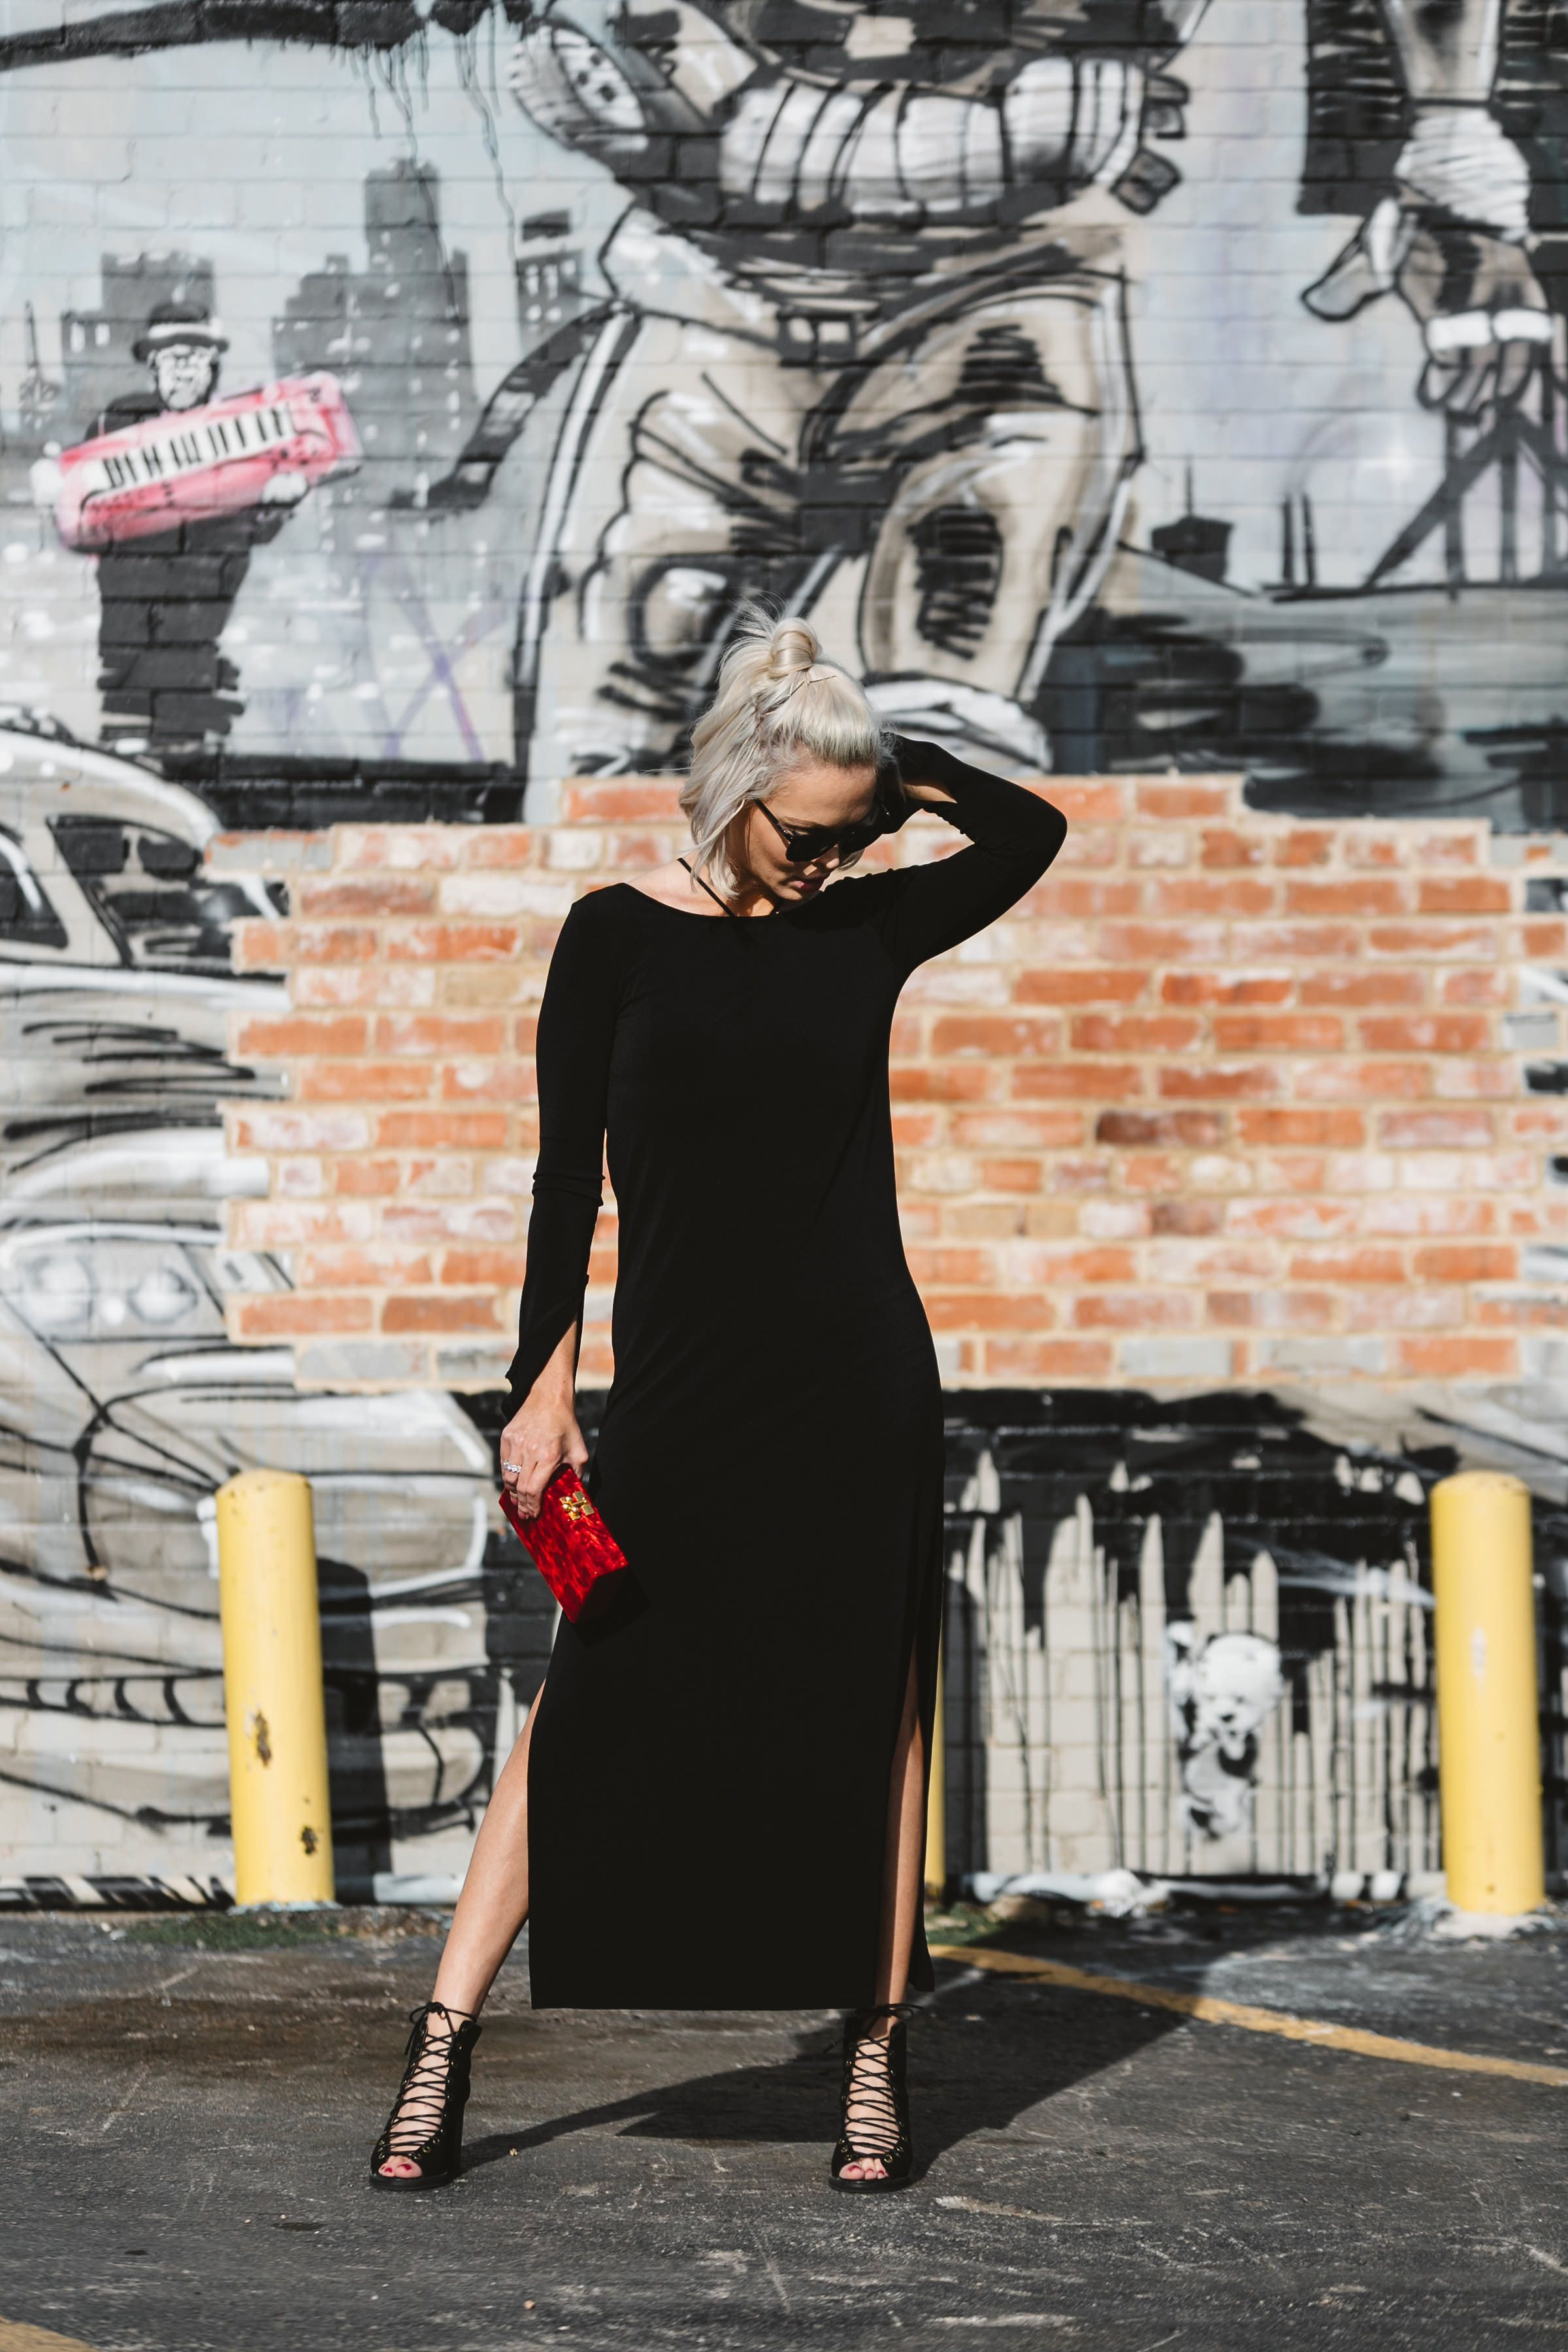 Little Black Dress 2 0 Styling Your Lbd With Red Accessories Red Accessories Evening Wear Style [ 3600 x 2400 Pixel ]